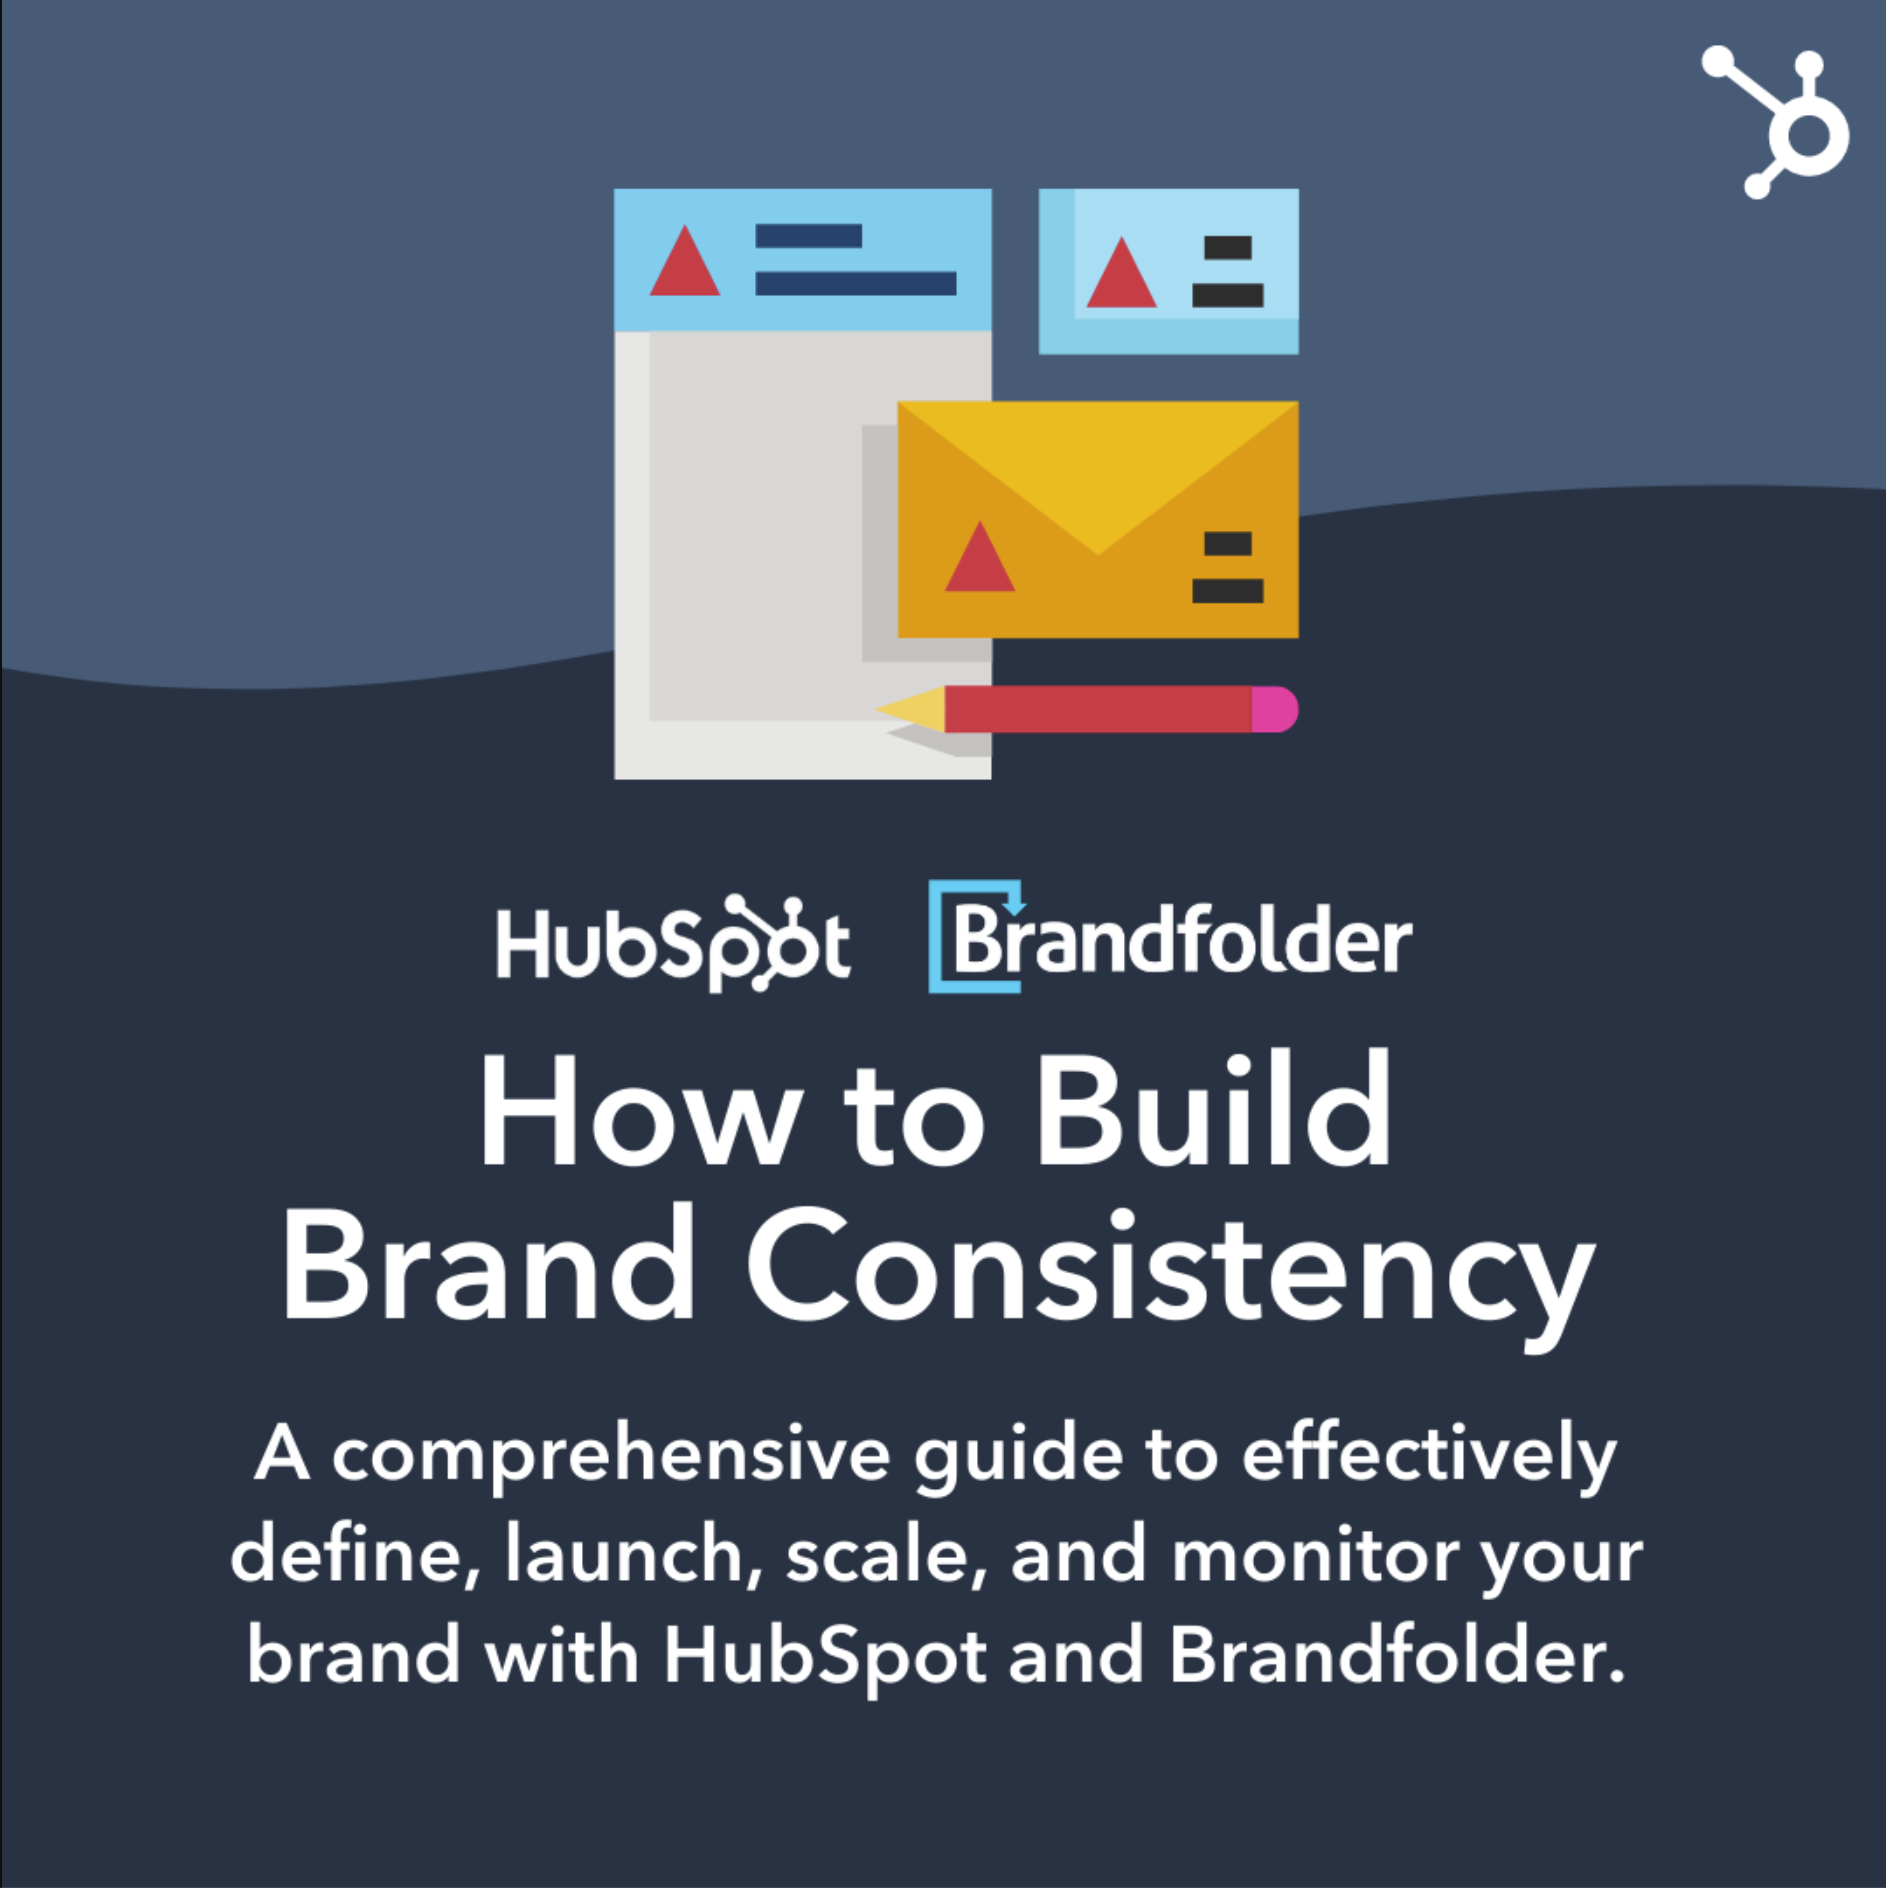 How to Build Brand Consistency with Brandfolder